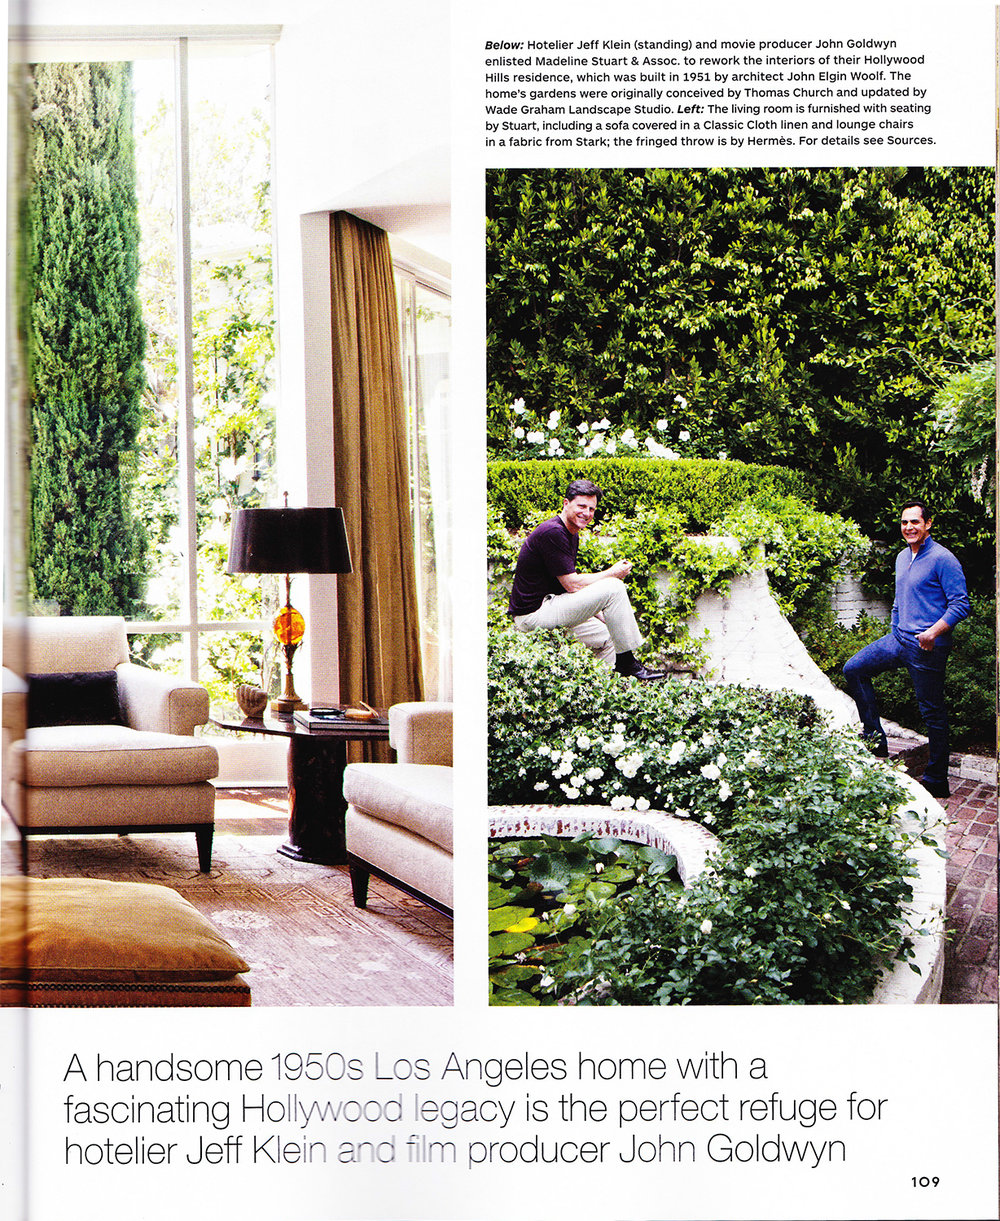 archdigest3-large.jpg